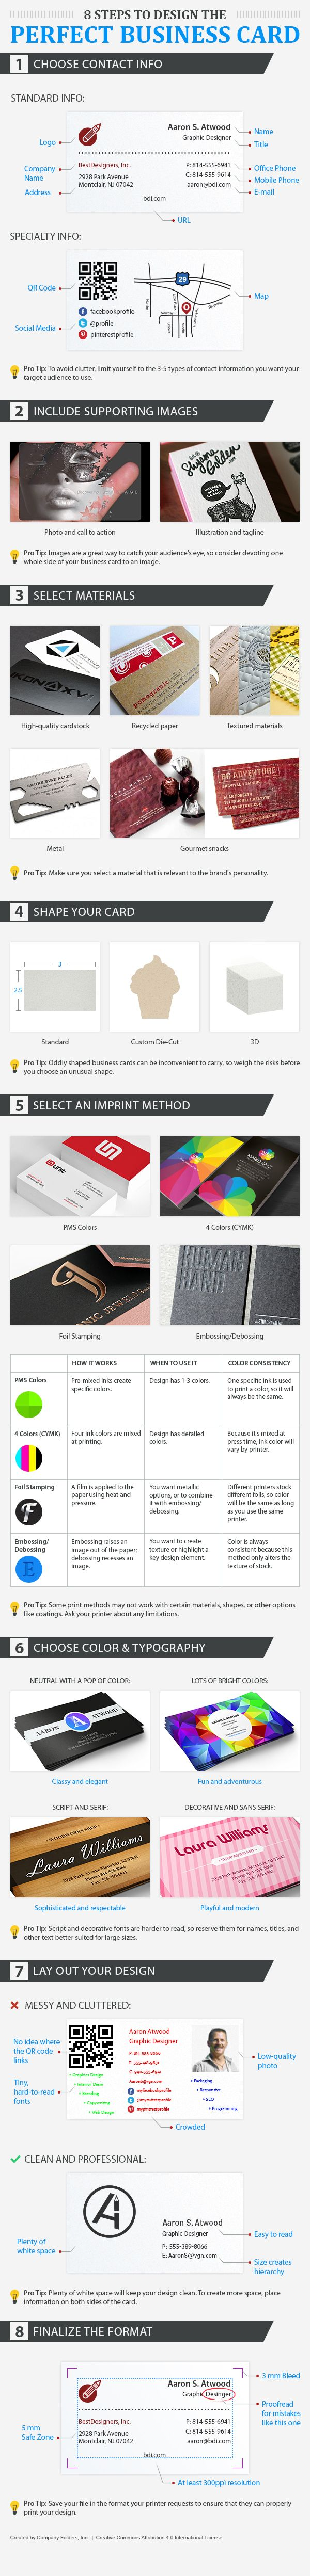 How to create an amazing business card business cards business business cards are one of the most common print designs so youd think colourmoves